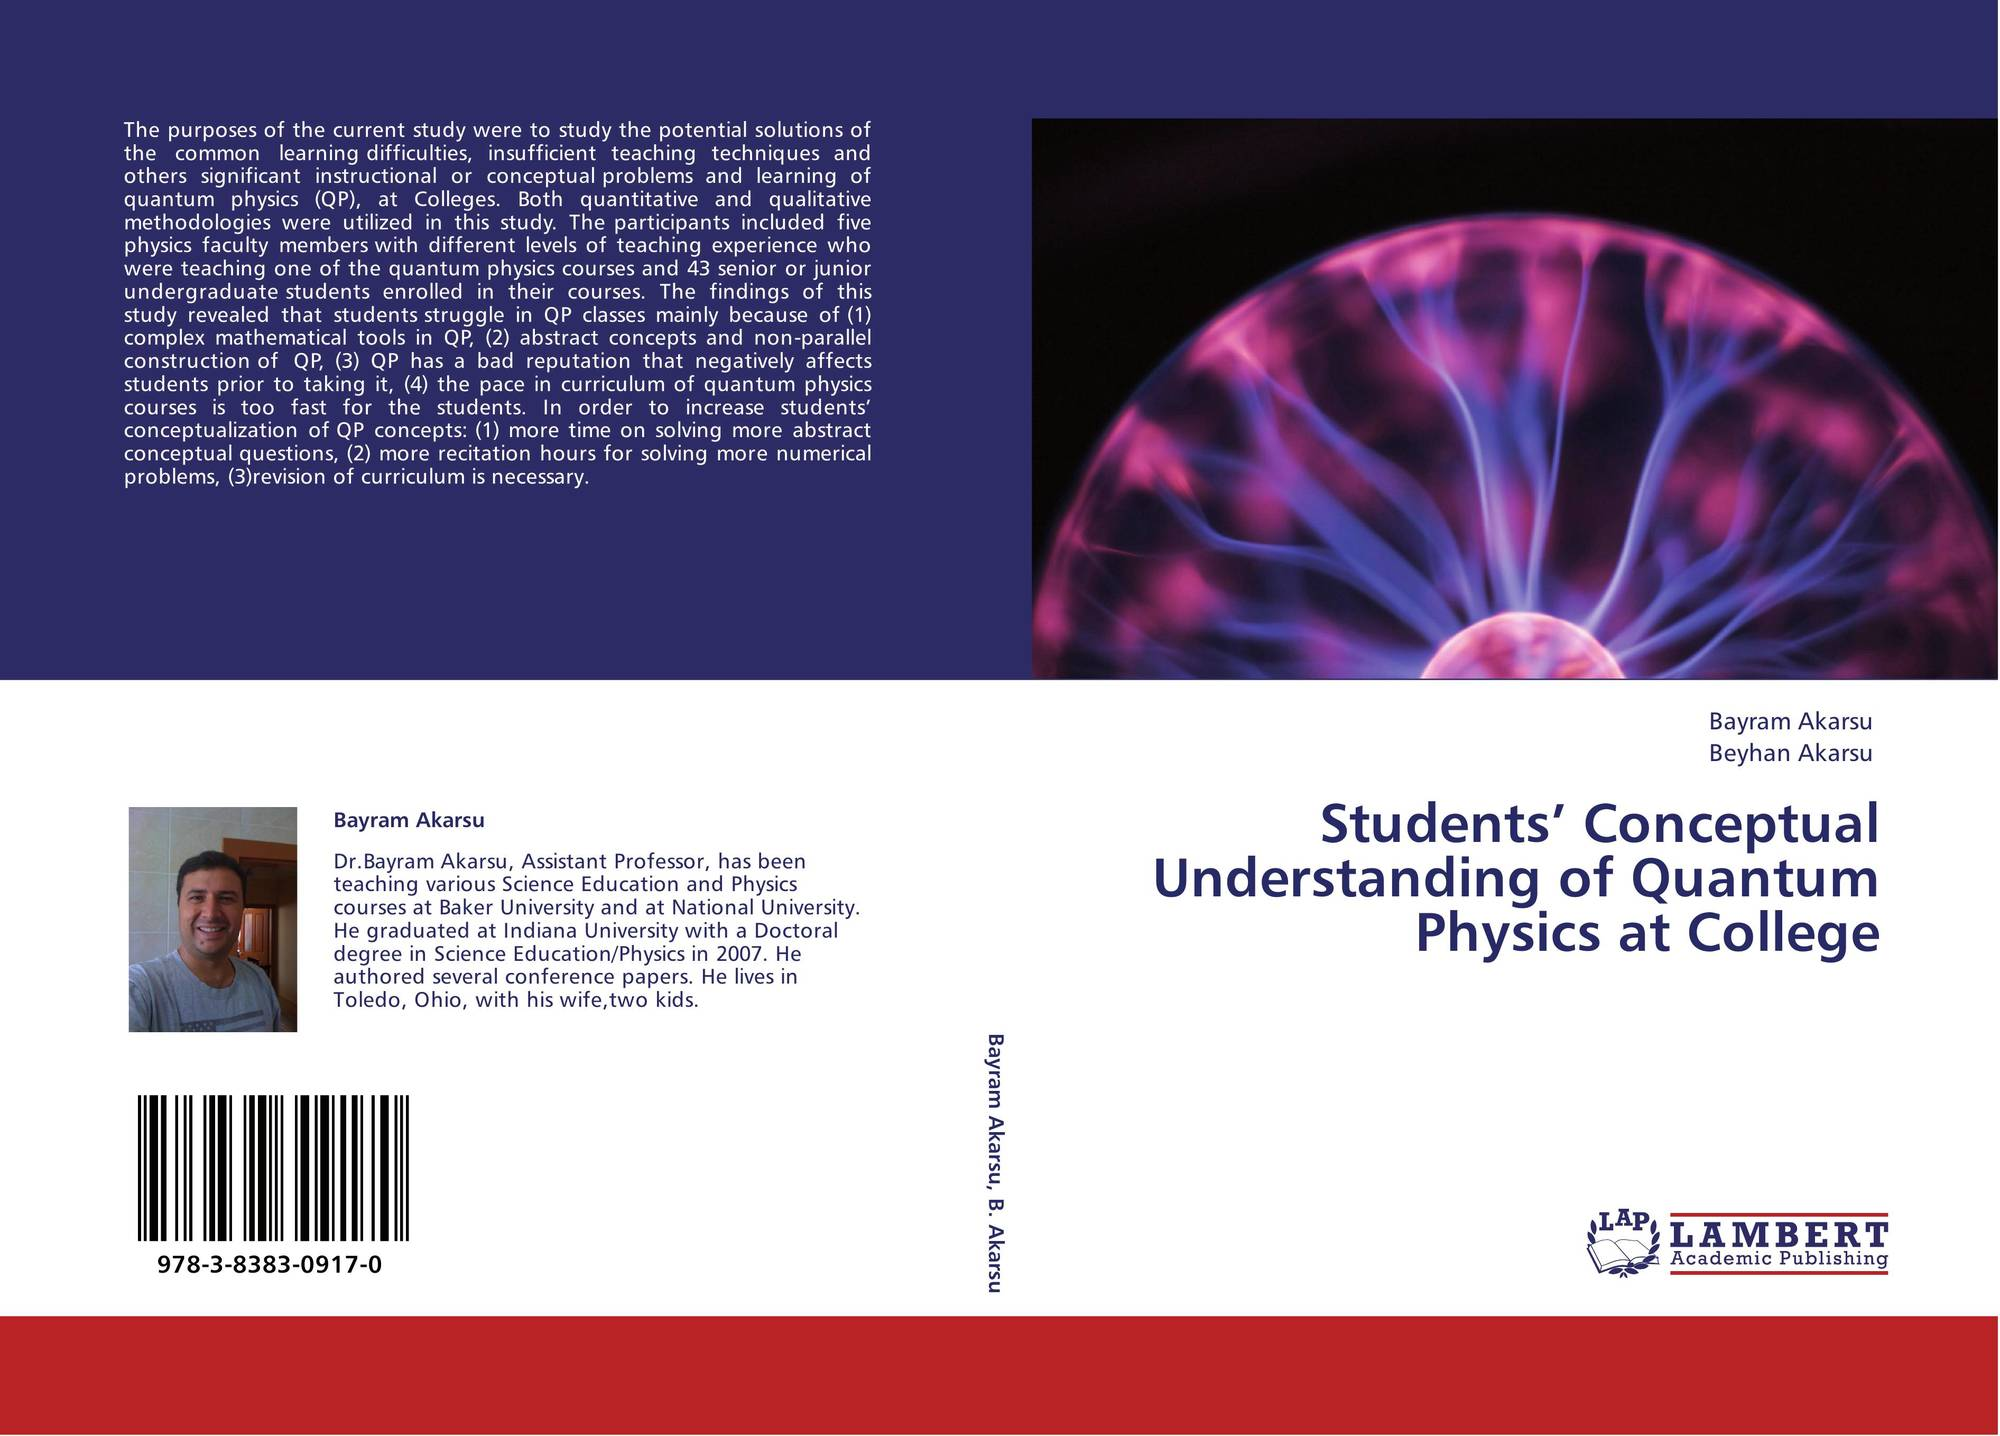 the concept of the connection of everything because of quantum physics